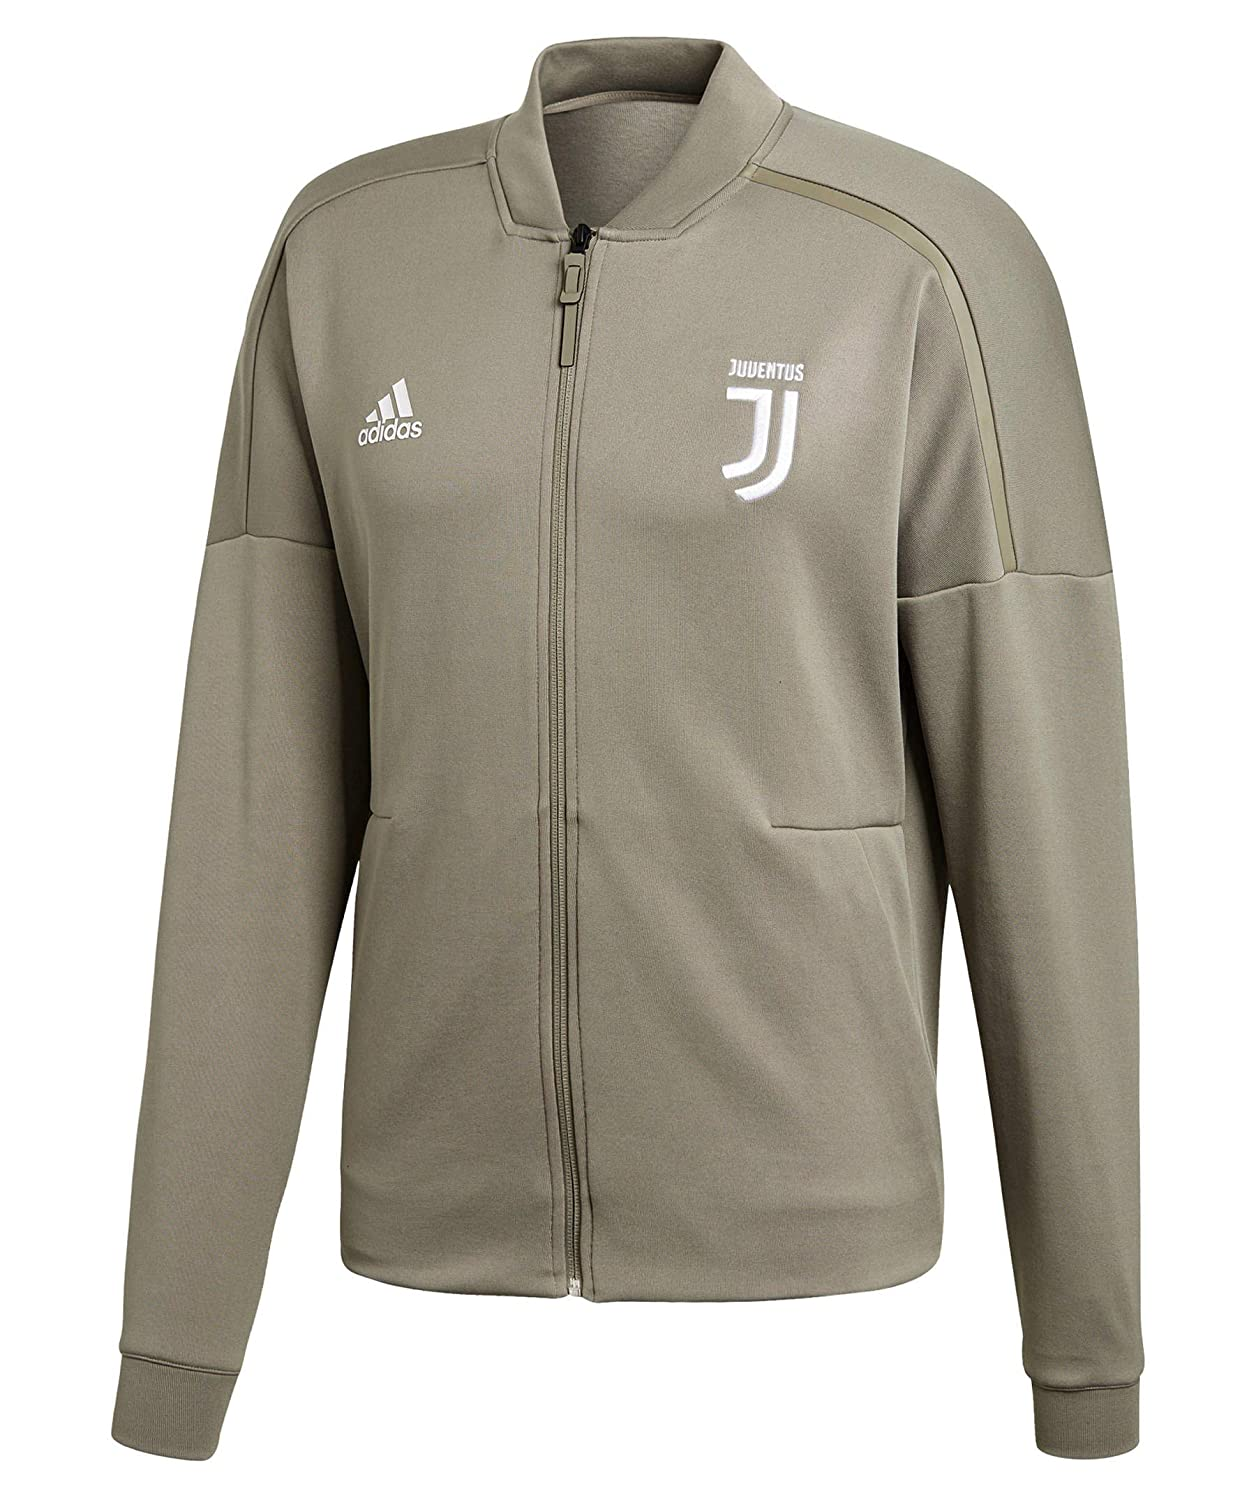 Adidas Juventus Anthem Grey Jacket 2018-2019